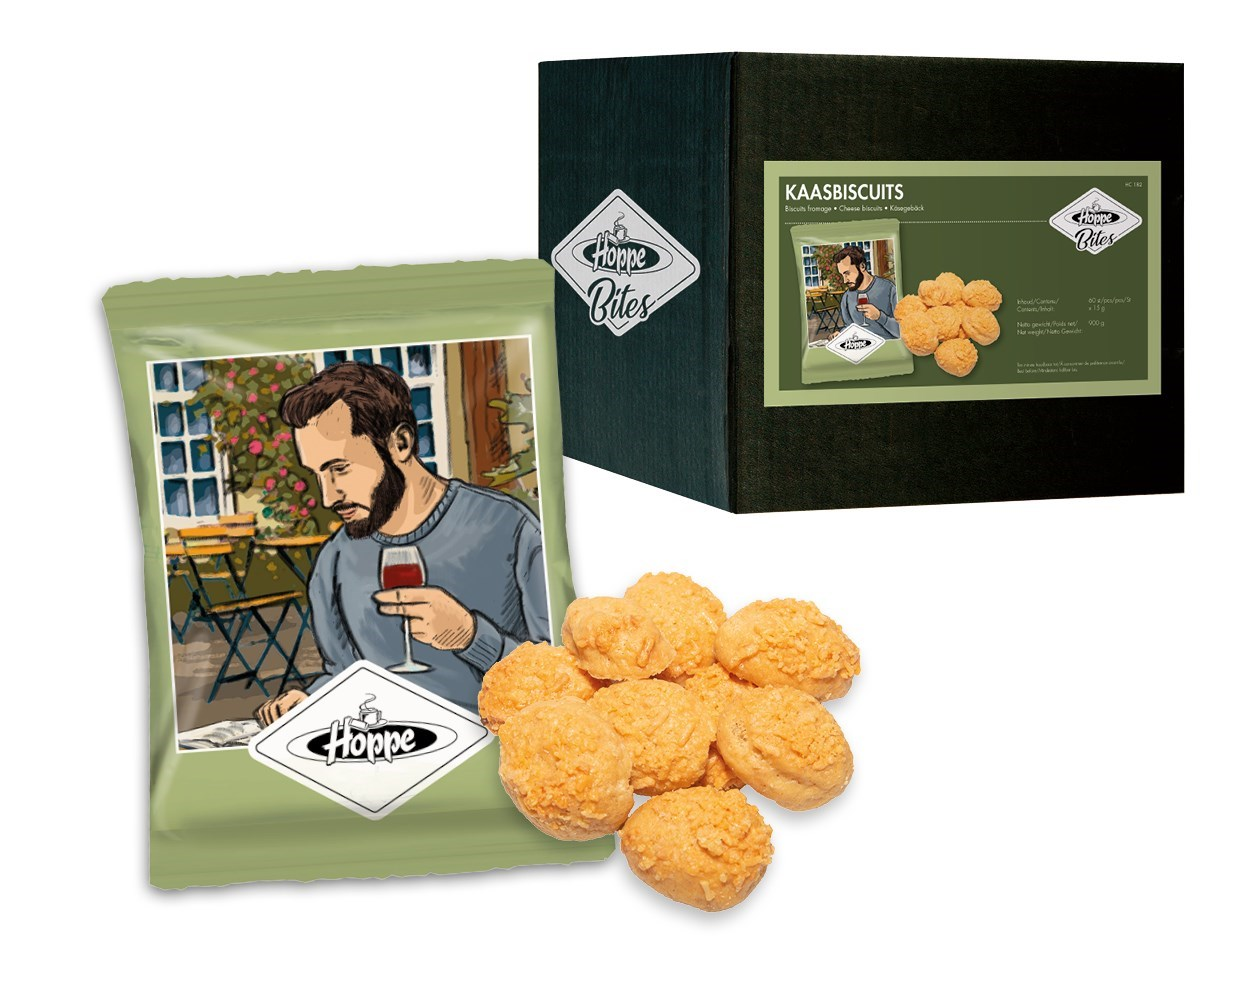 Productafbeelding Hoppe Kaas biscuits 900g